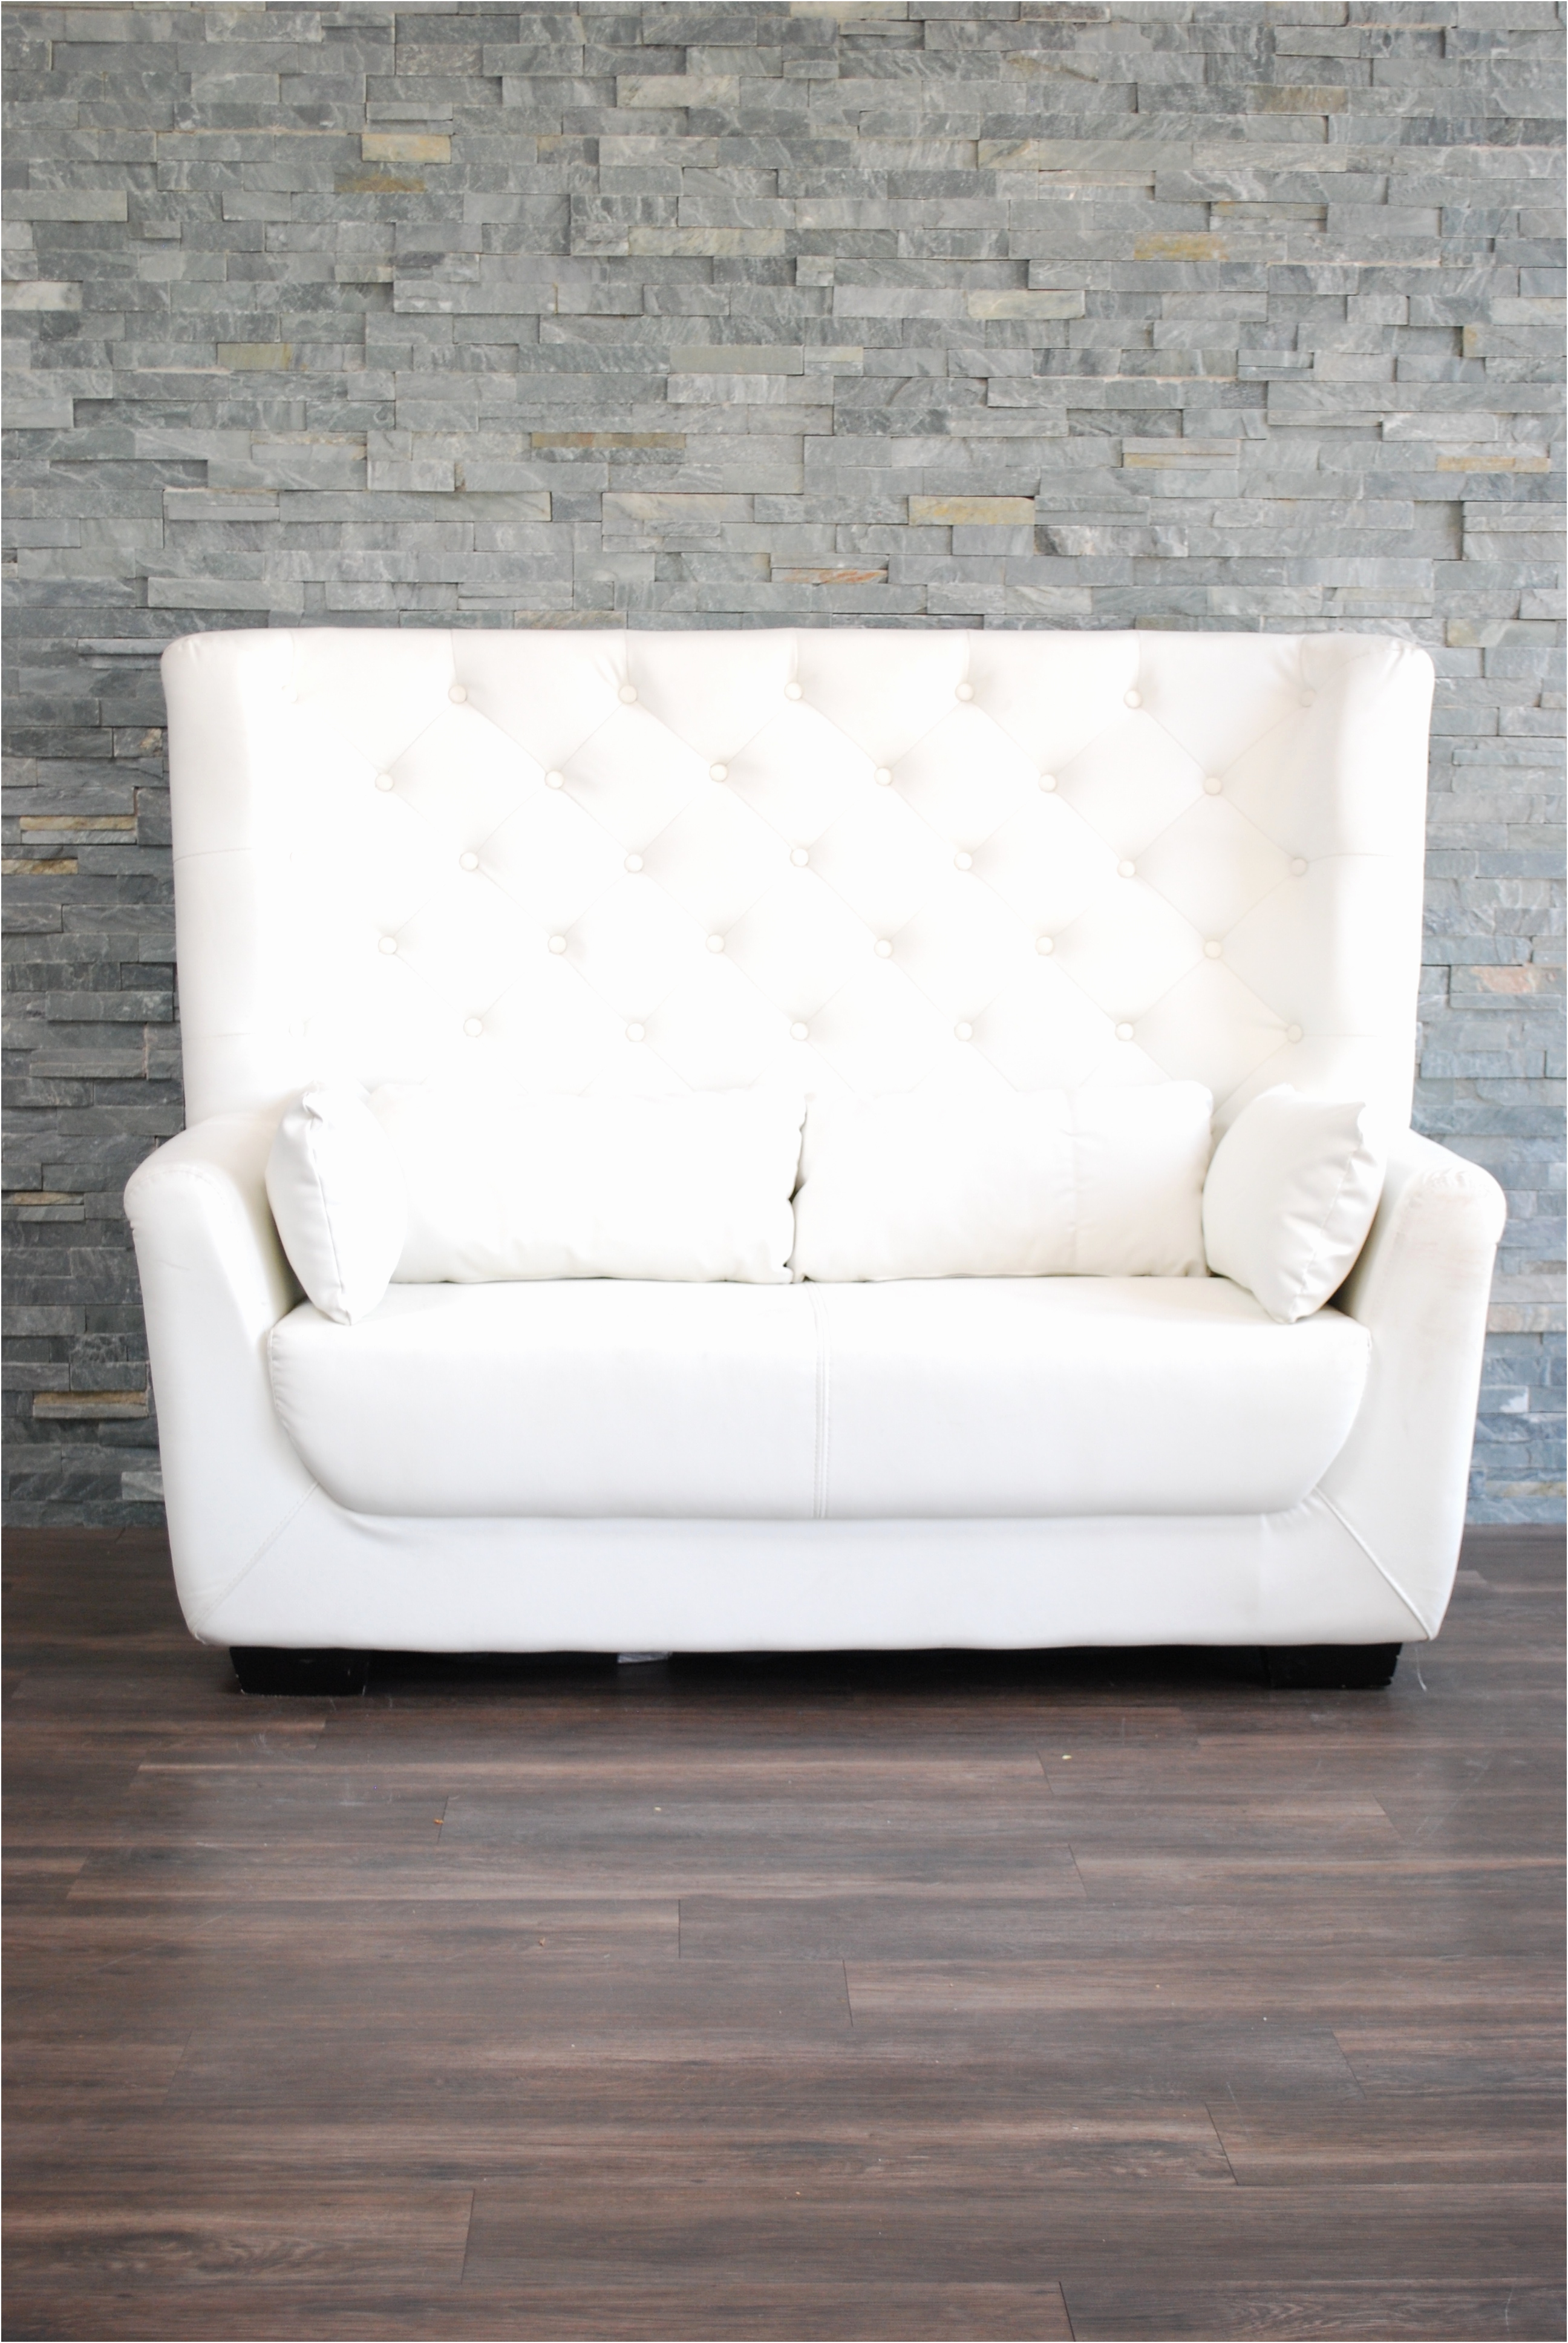 fresh tufted chesterfield sofa photo-Cute Tufted Chesterfield sofa Collection